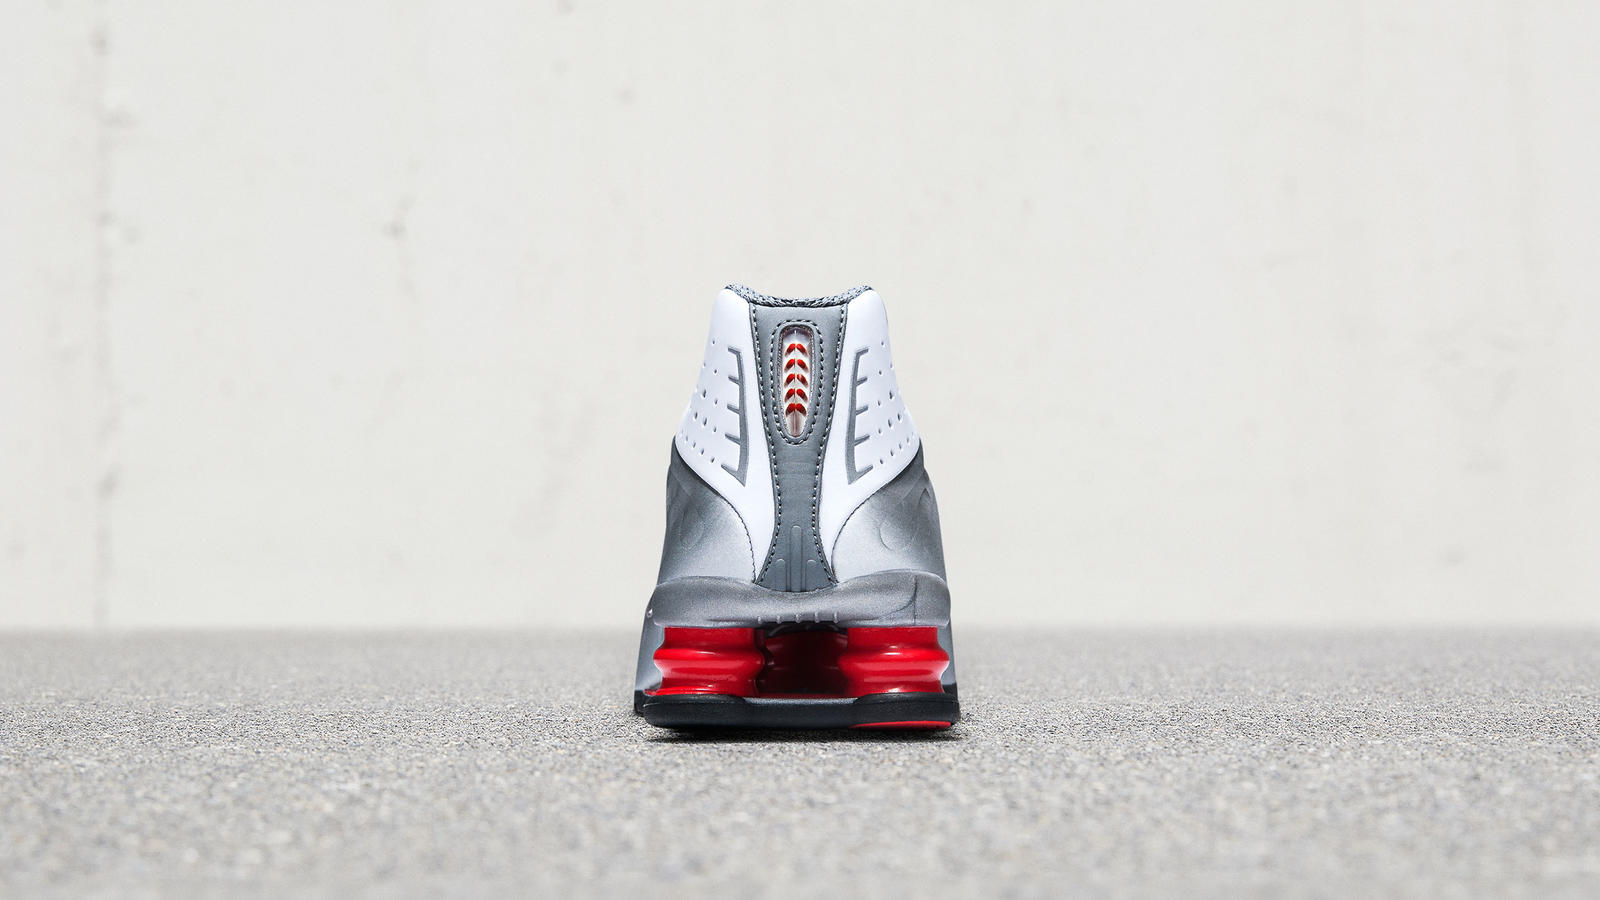 How to Get the Nike Shox R4 2